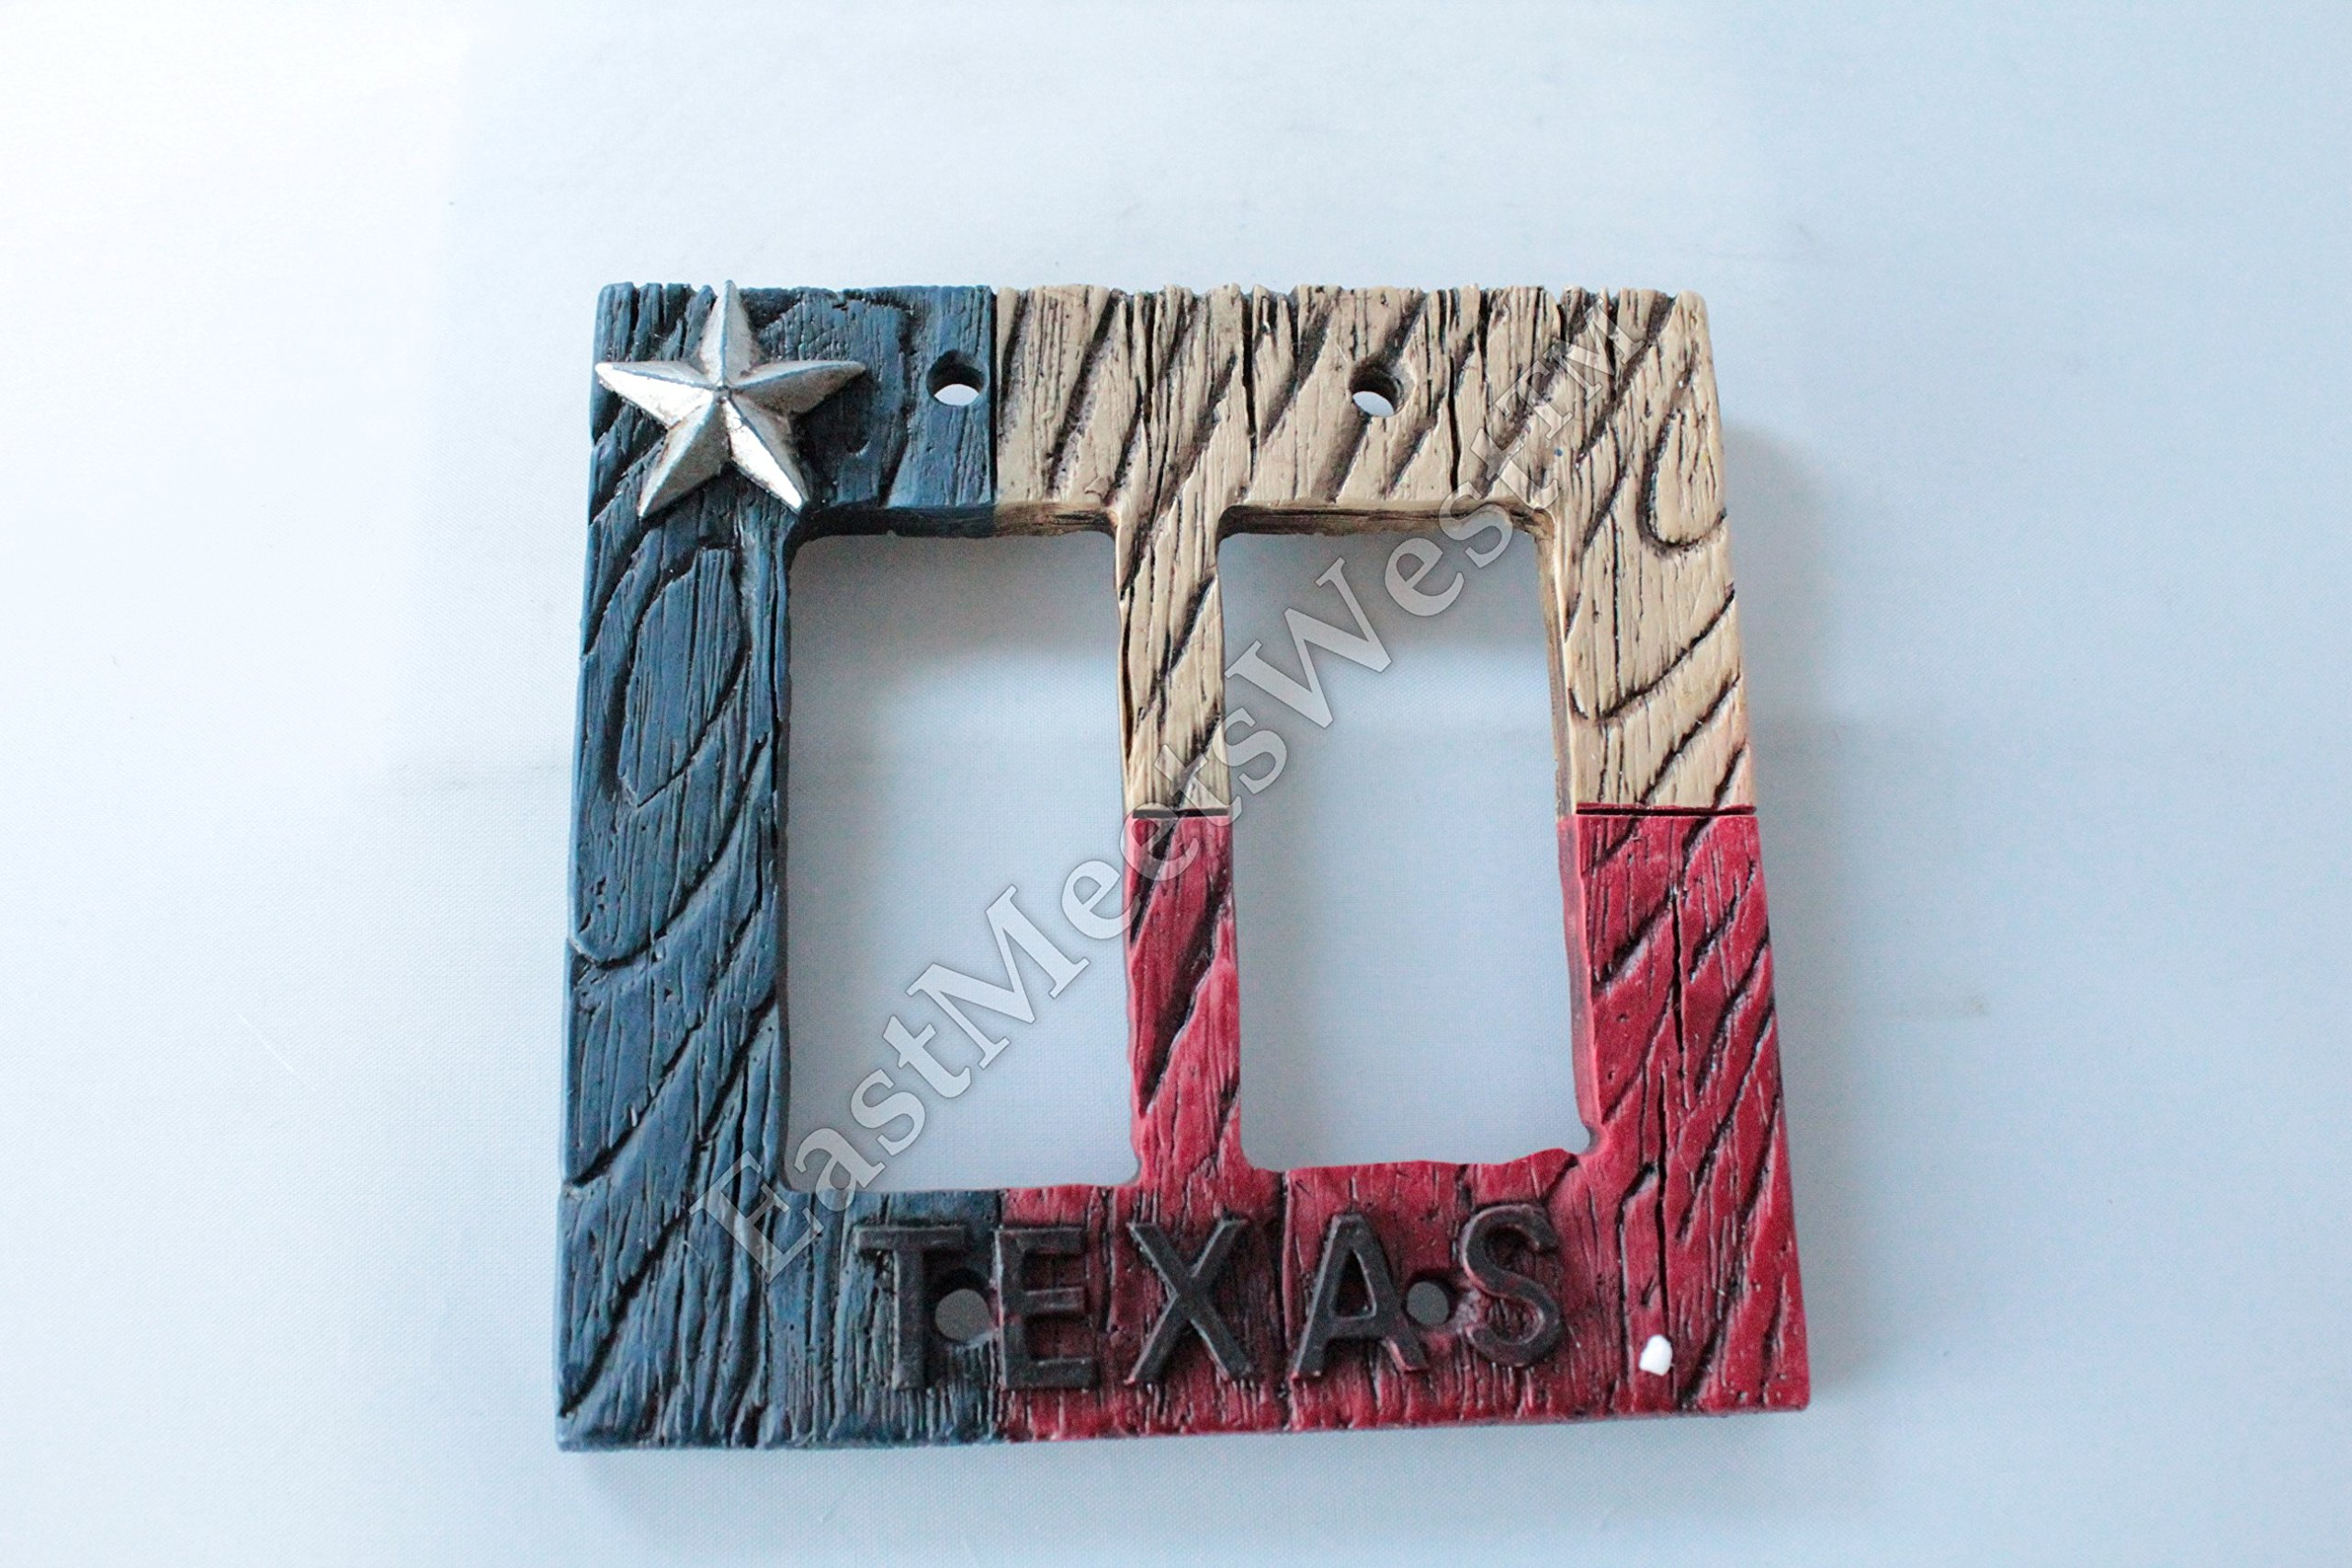 Western Cowboy Texas Flag Star Switch Plate Covers Electric Outlet Rustic Wood Look Decor (Double Rocker)